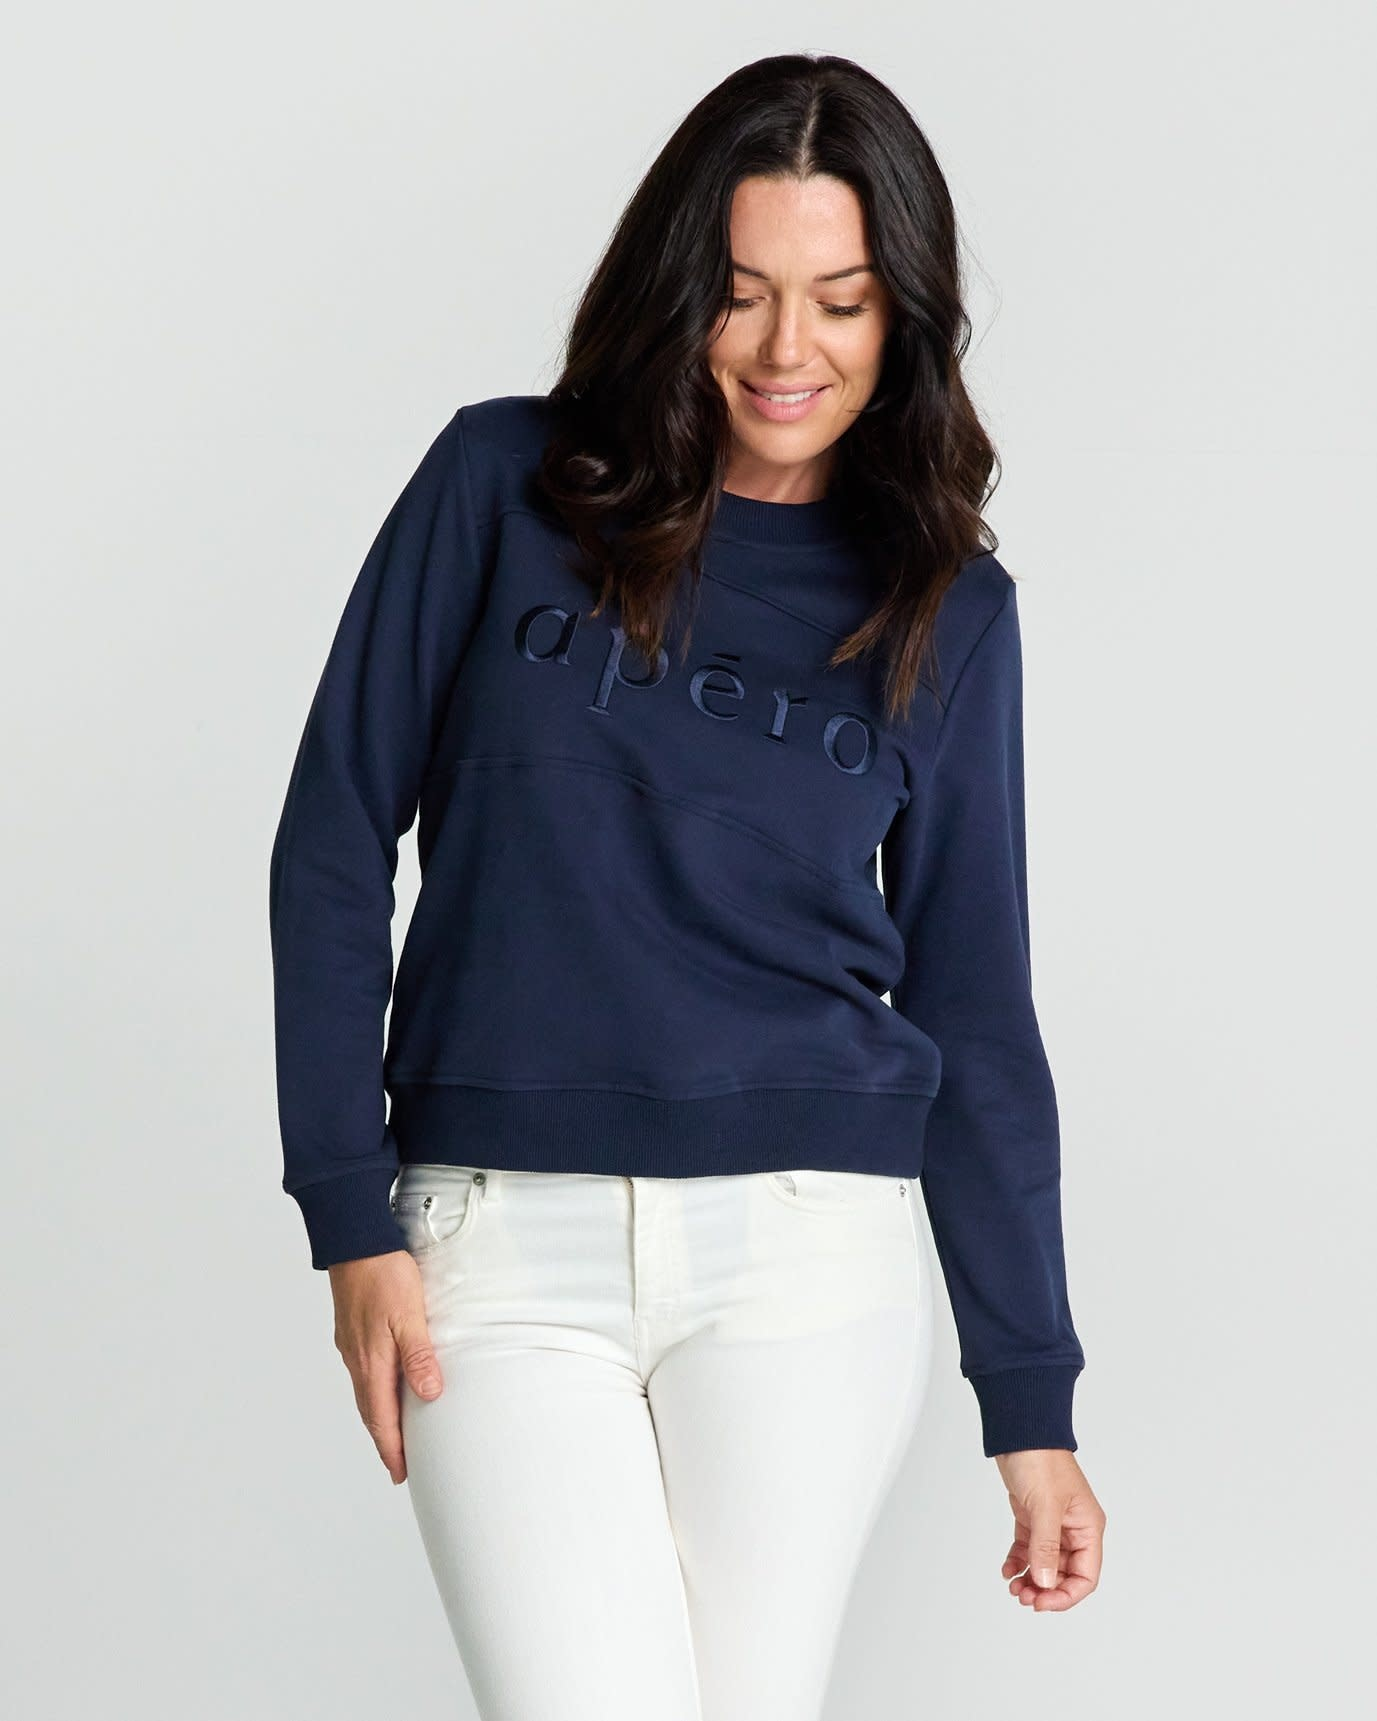 Apero Panel Embroidered Jumper Navy